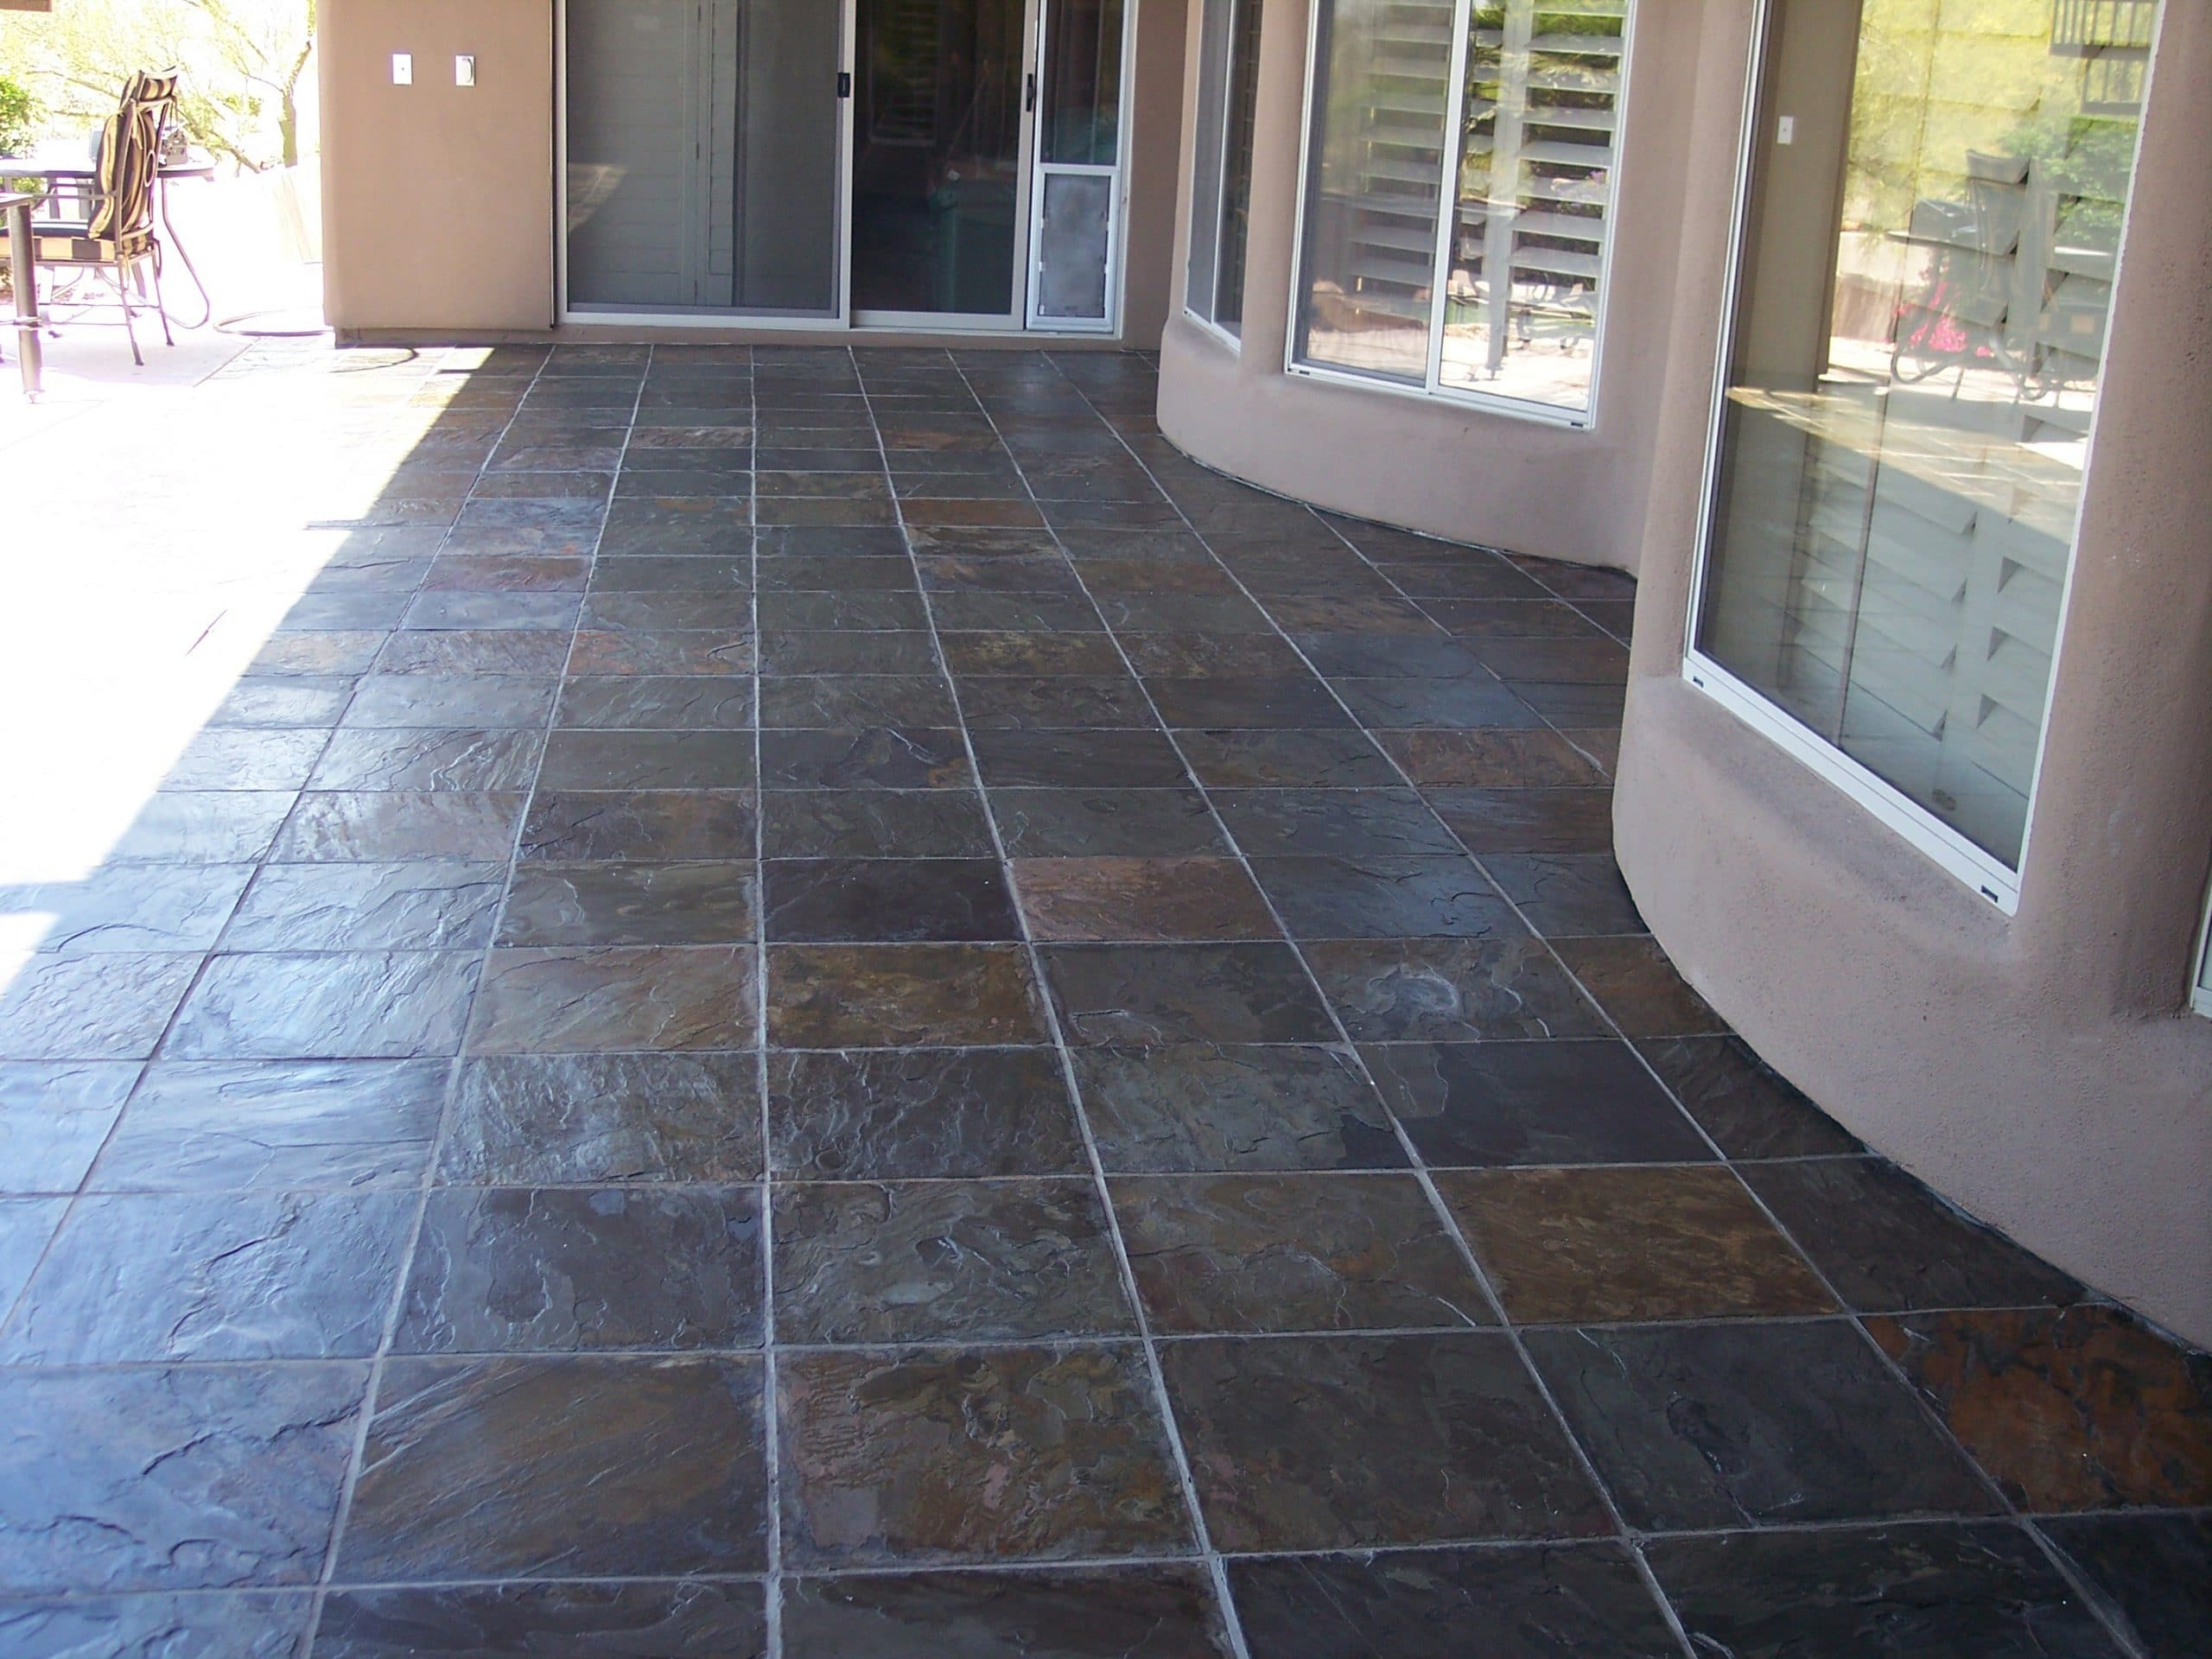 Superior After Professional Cleaning And Grout Sealing Services By Desert Tile U0026  Grout Care In Phoenix AZ